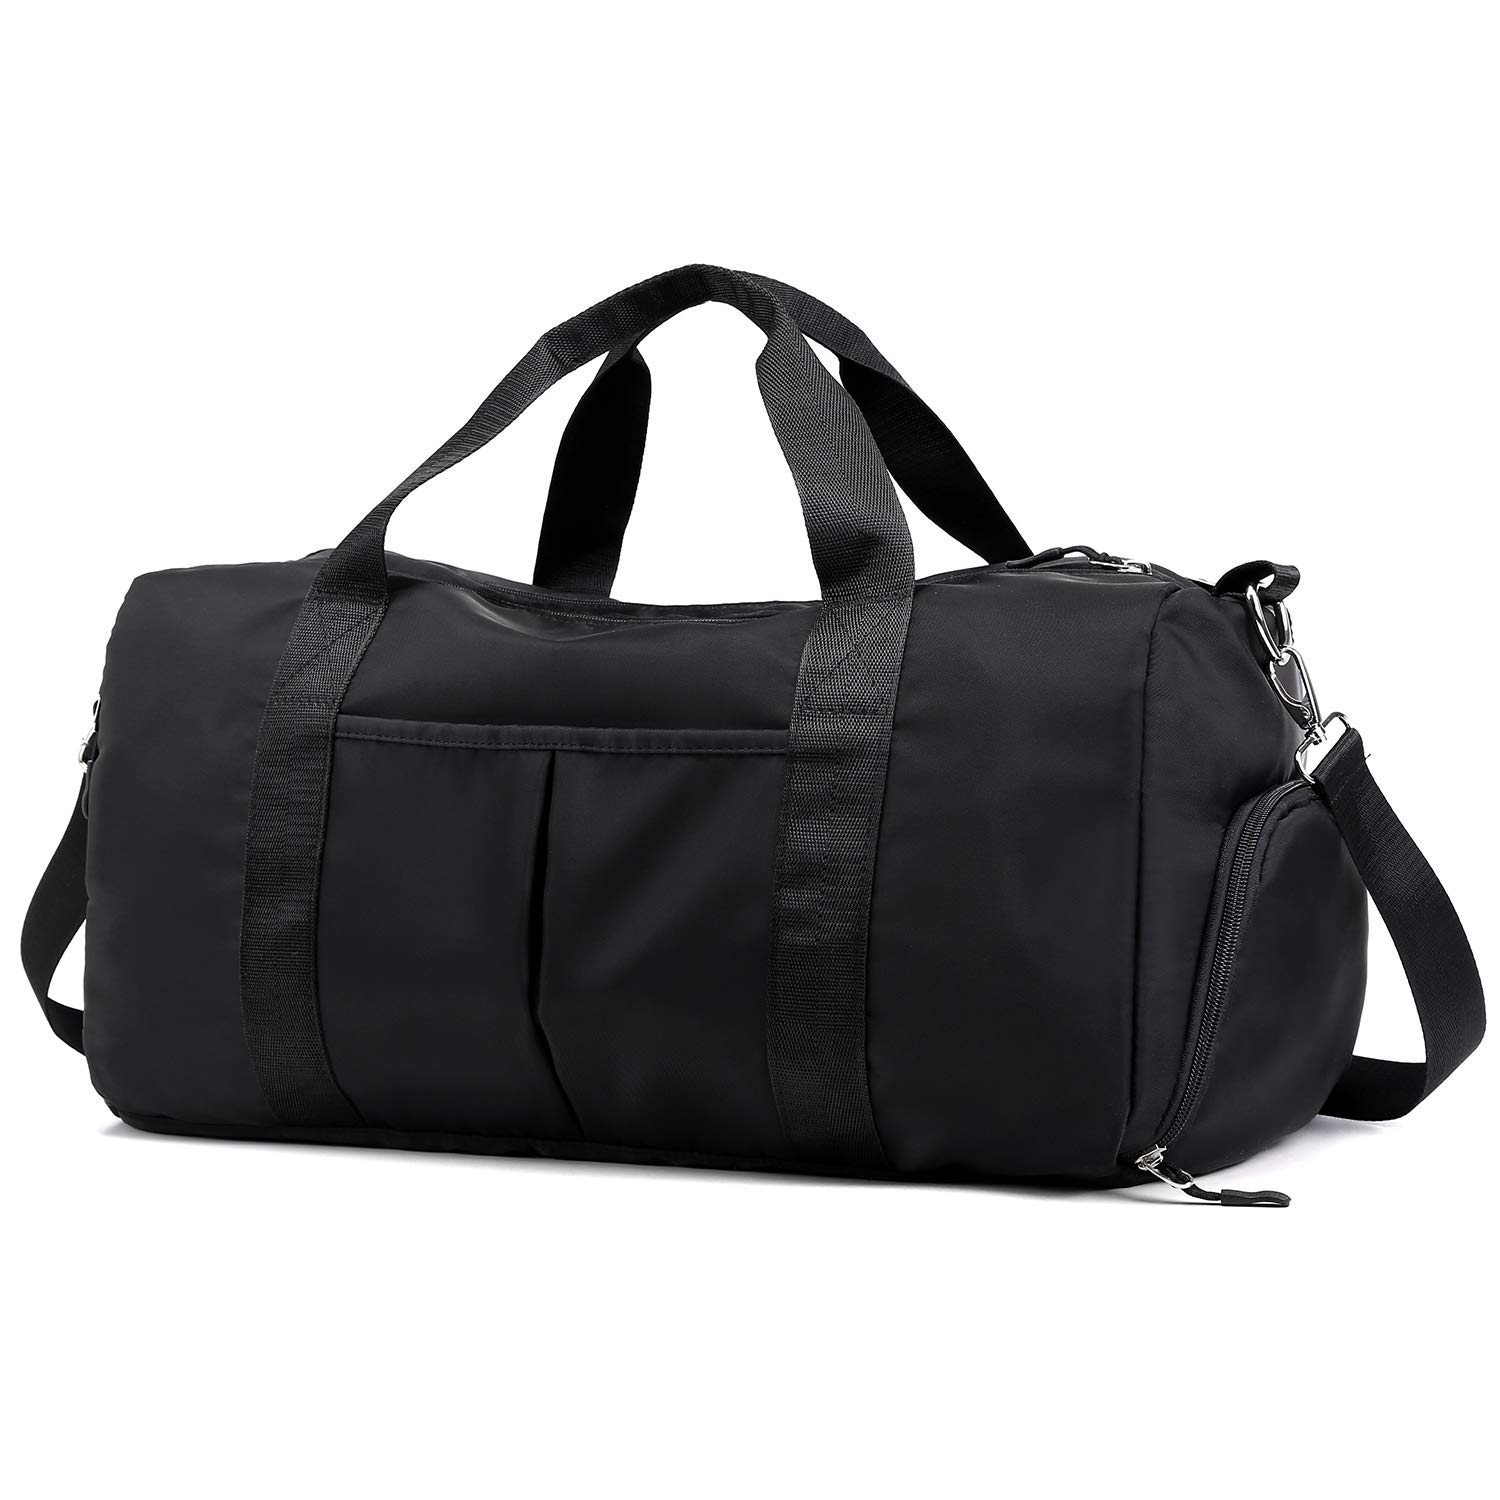 82a0992c4407 Forestfish Sports Gym Bag Travel Duffel Bag with Dry Wet Pocket & Shoes  Compartment for Women and Men (Black)